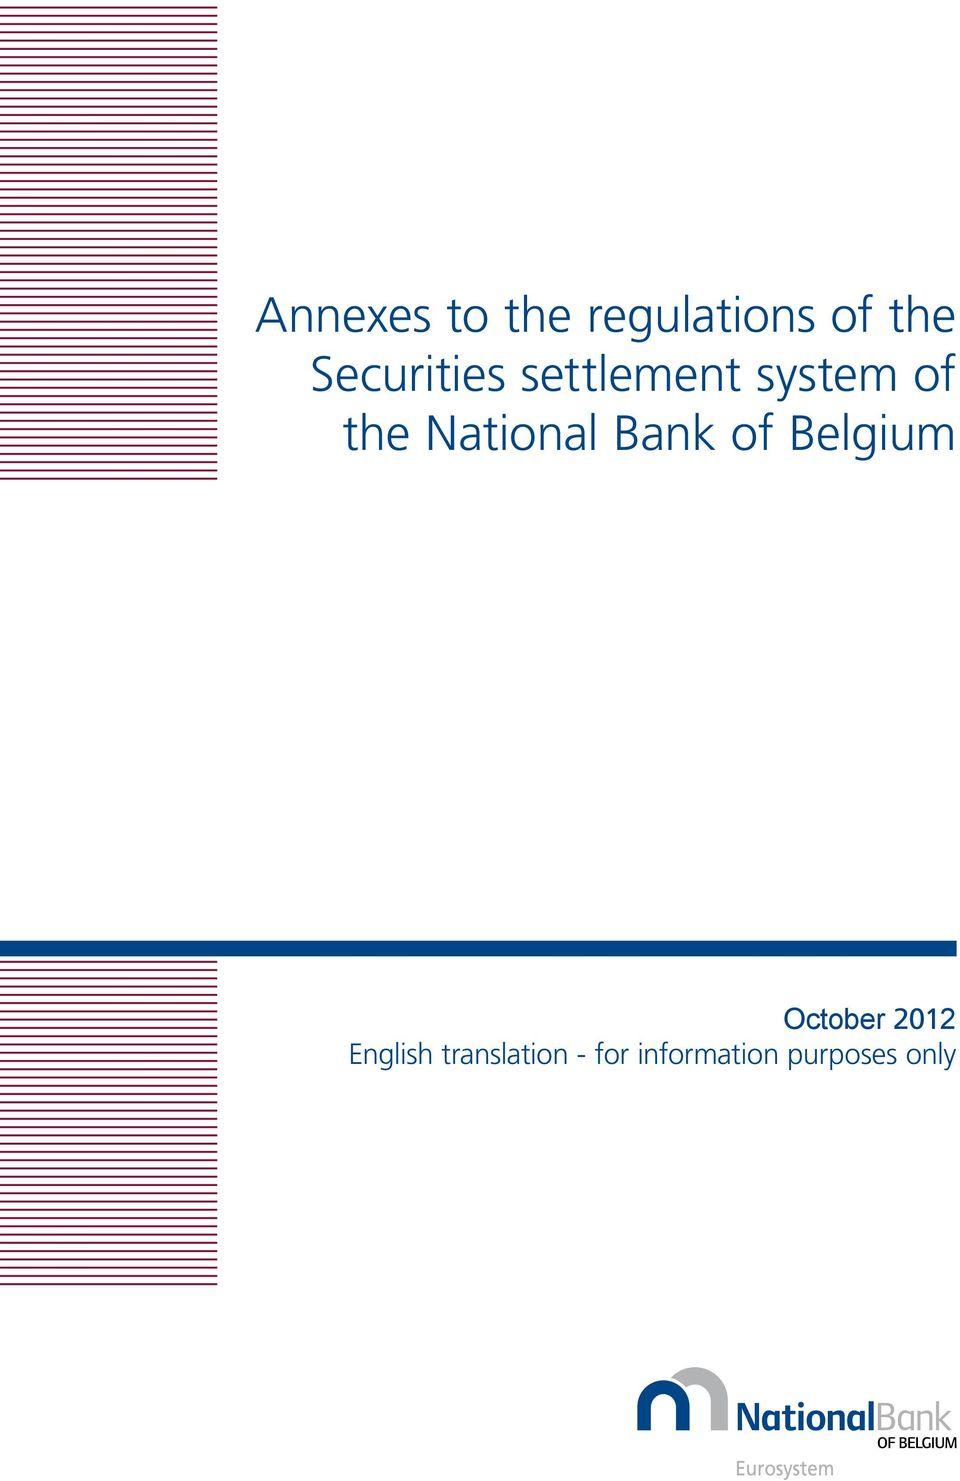 National Bank of Belgium October 2012